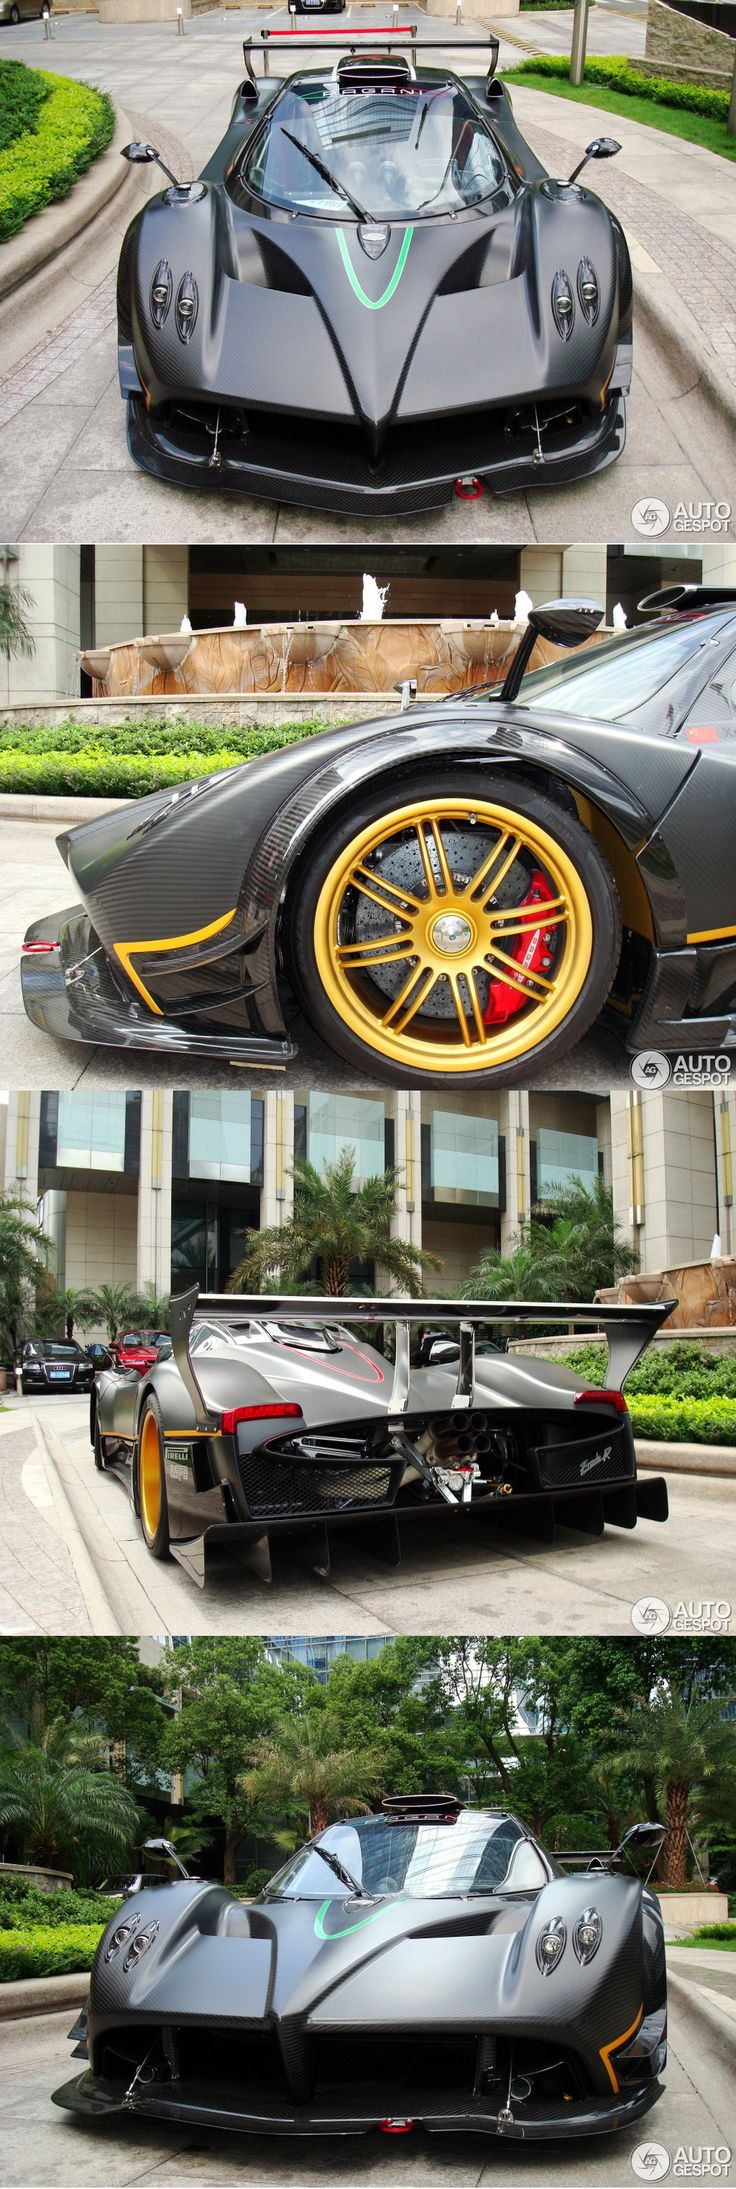 CRAZY /// The Ultimate Supercar - Pagani Zonda R http://www.wealthdiscovery3d.com/offer.php?id=ronpescatore